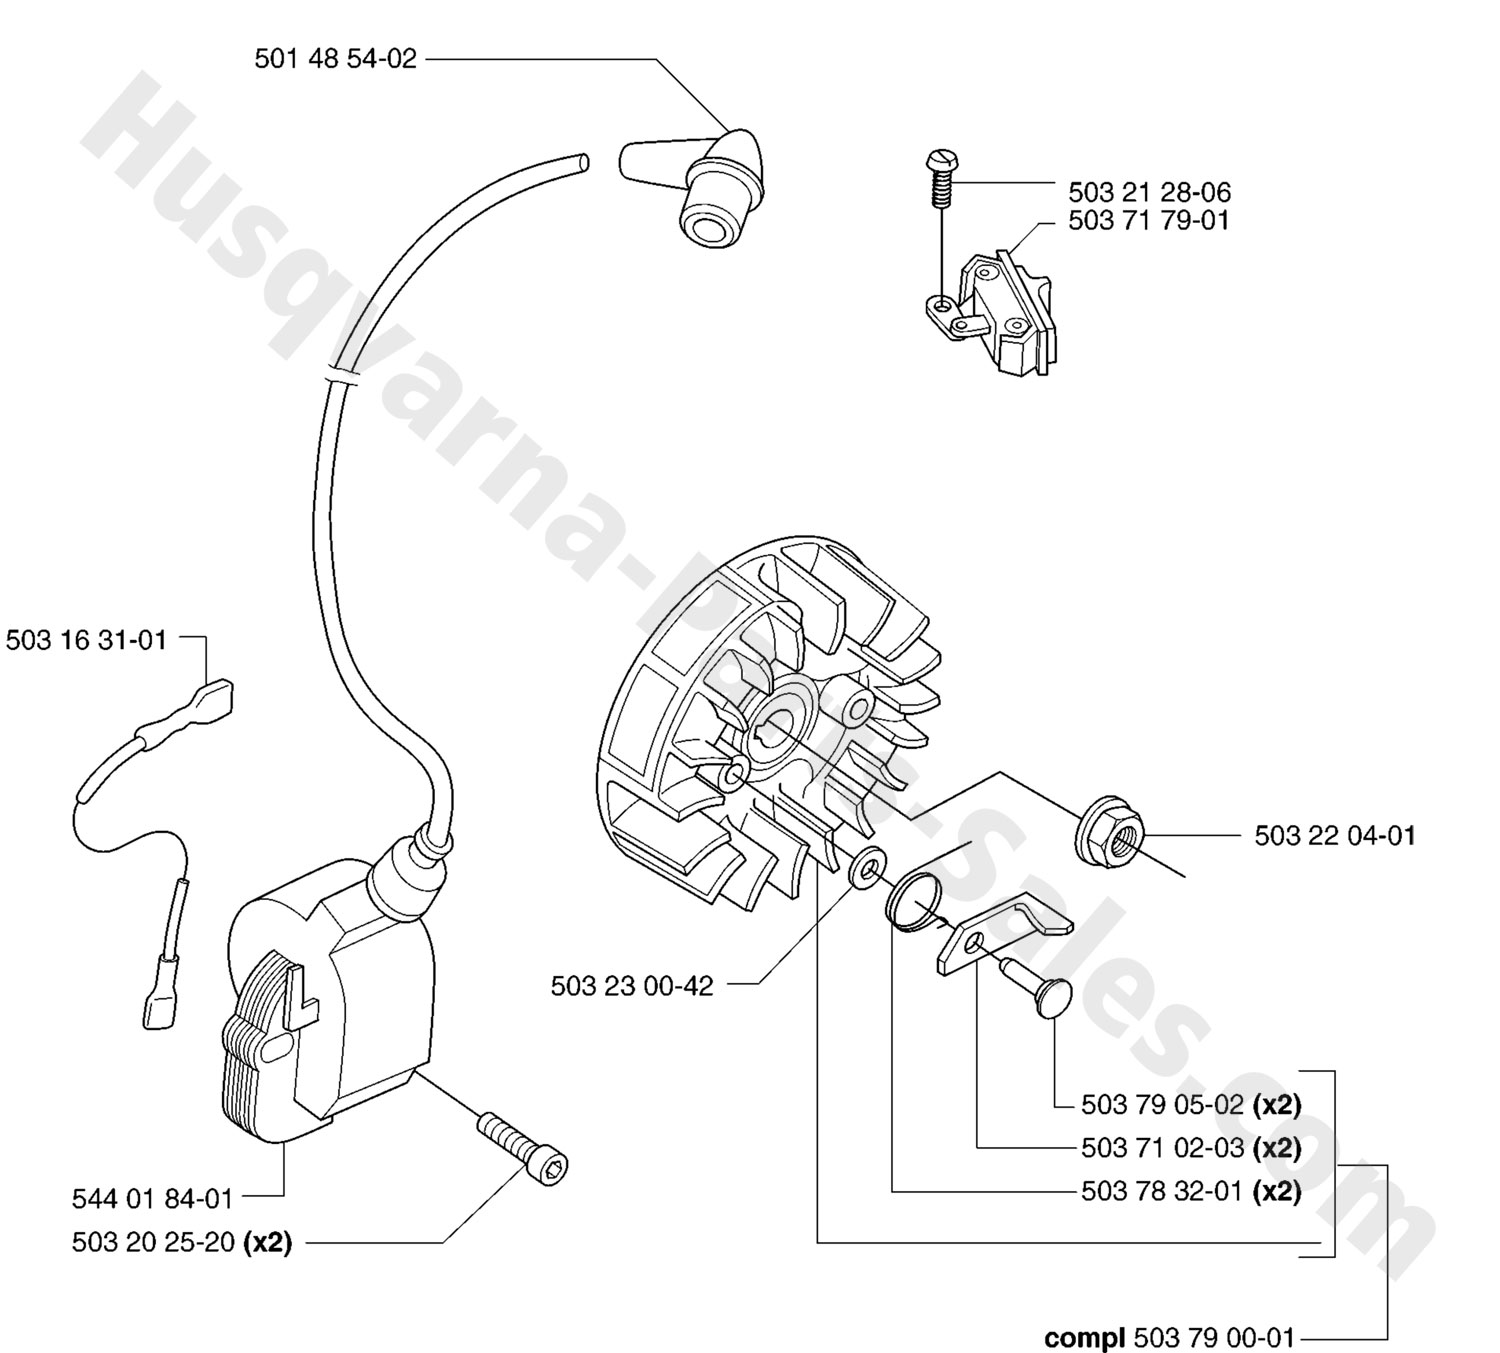 55 Husqvarna Chainsaw Ignition System Parts